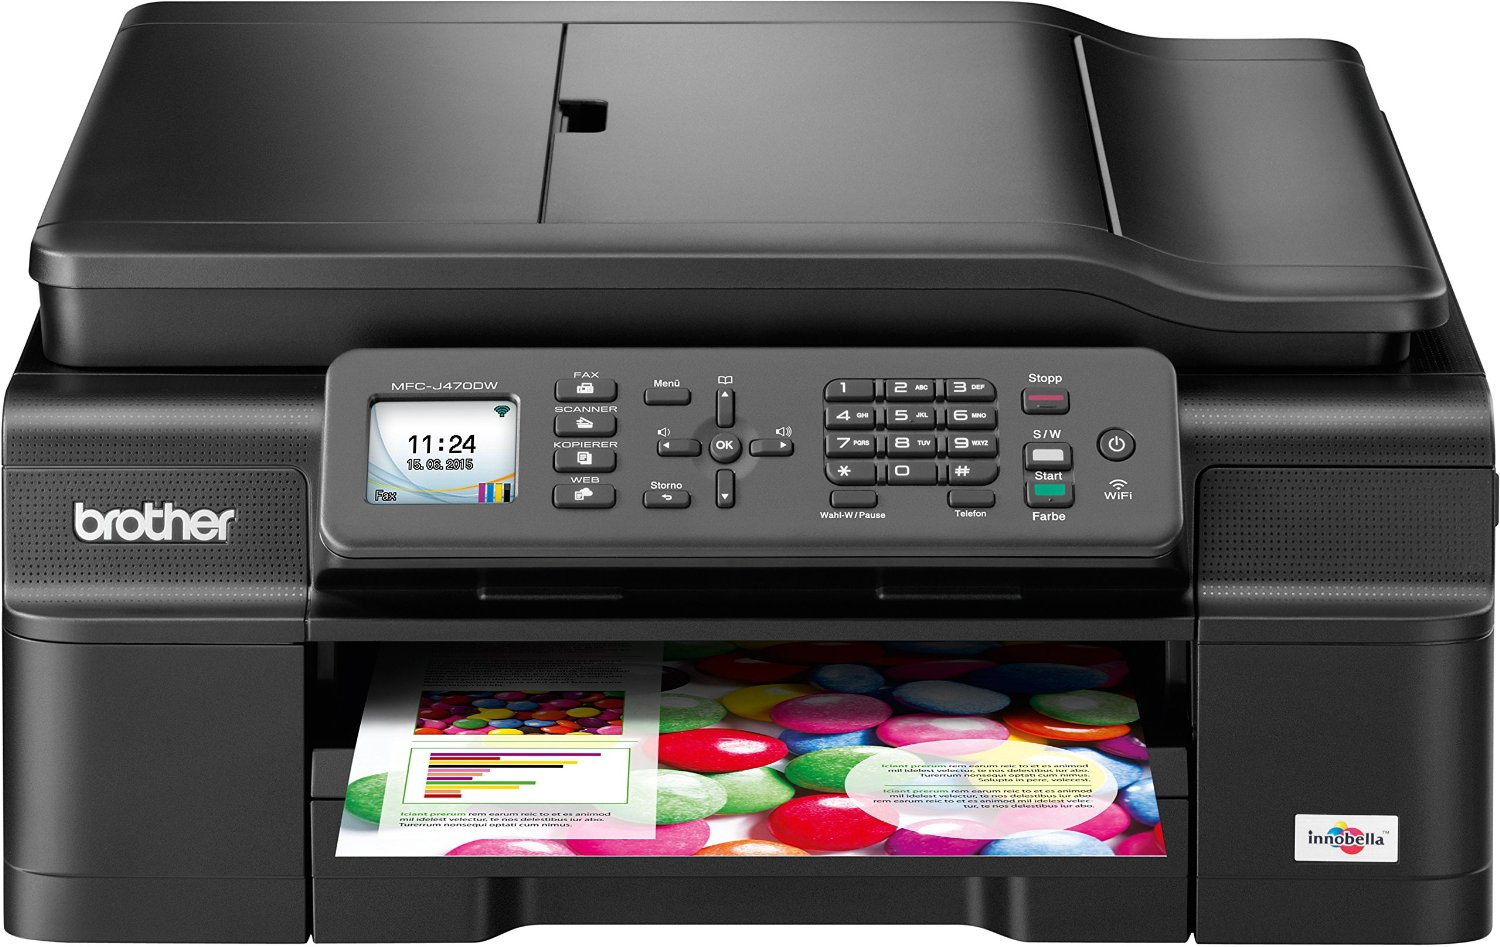 Download Driver For Brother Printer Mfc-j470dw